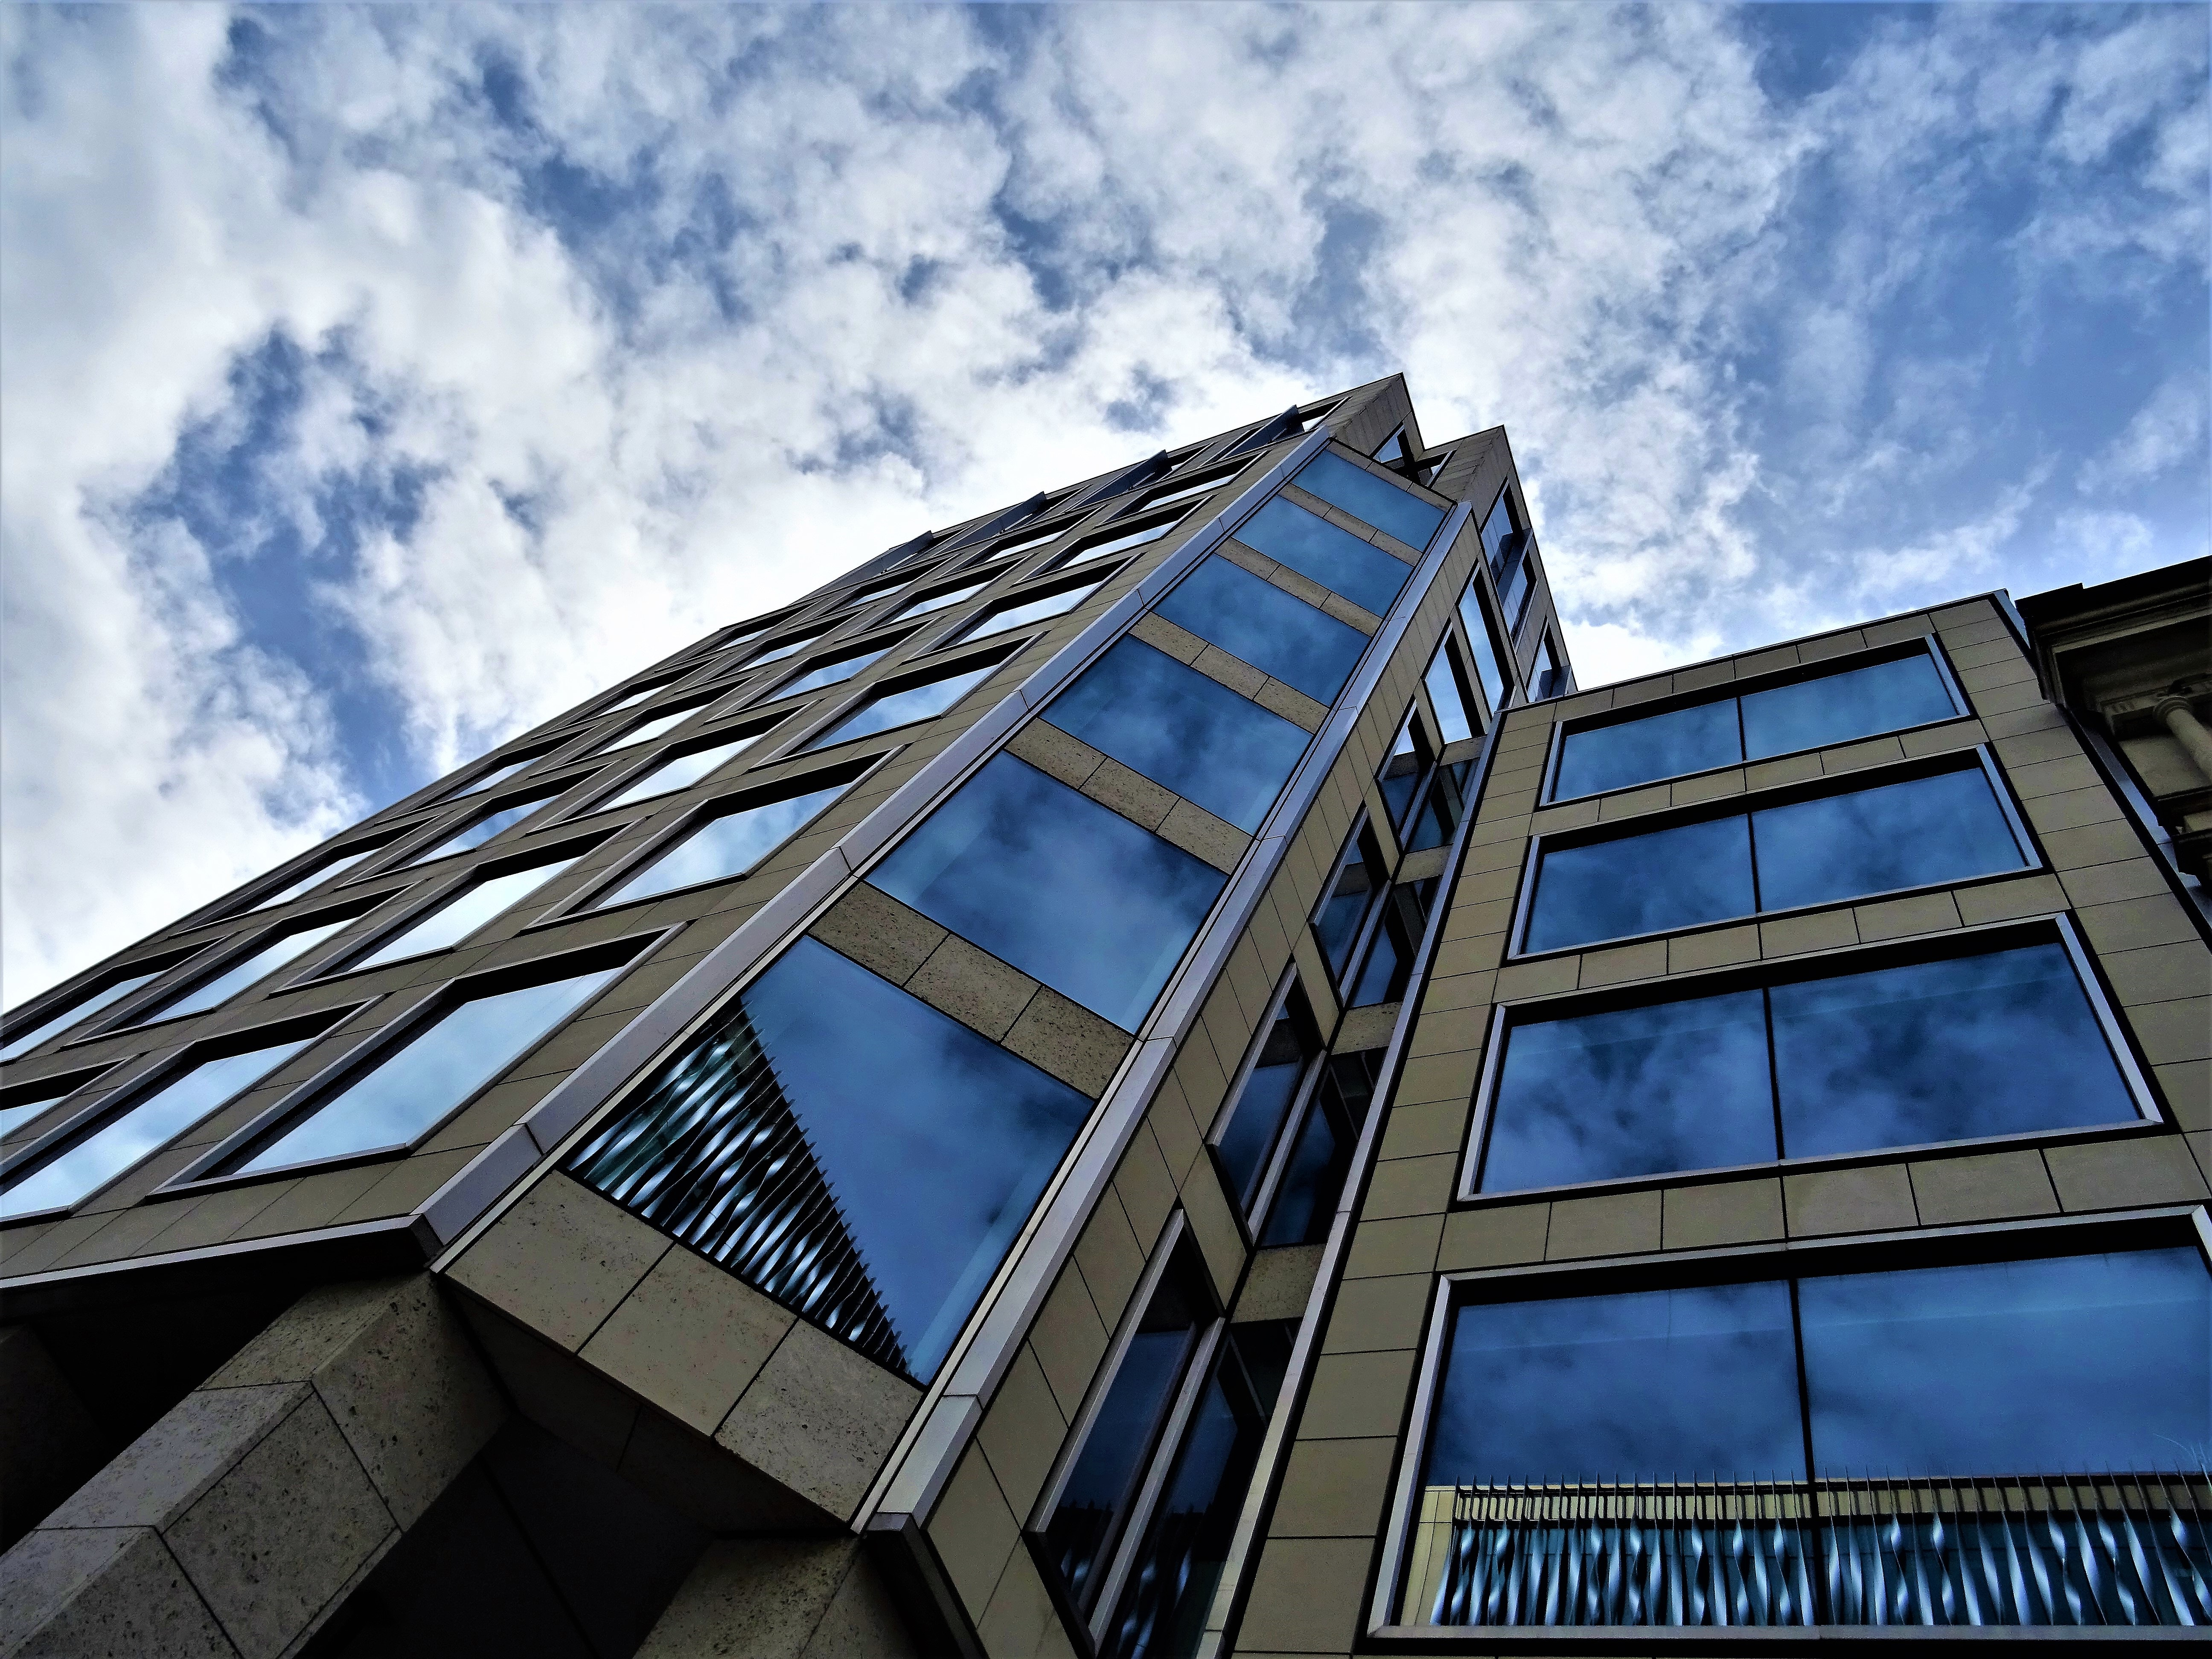 Low Angle Photo of High-rise Building, Architectural design, Low angle shot, Urban, Tall, HQ Photo